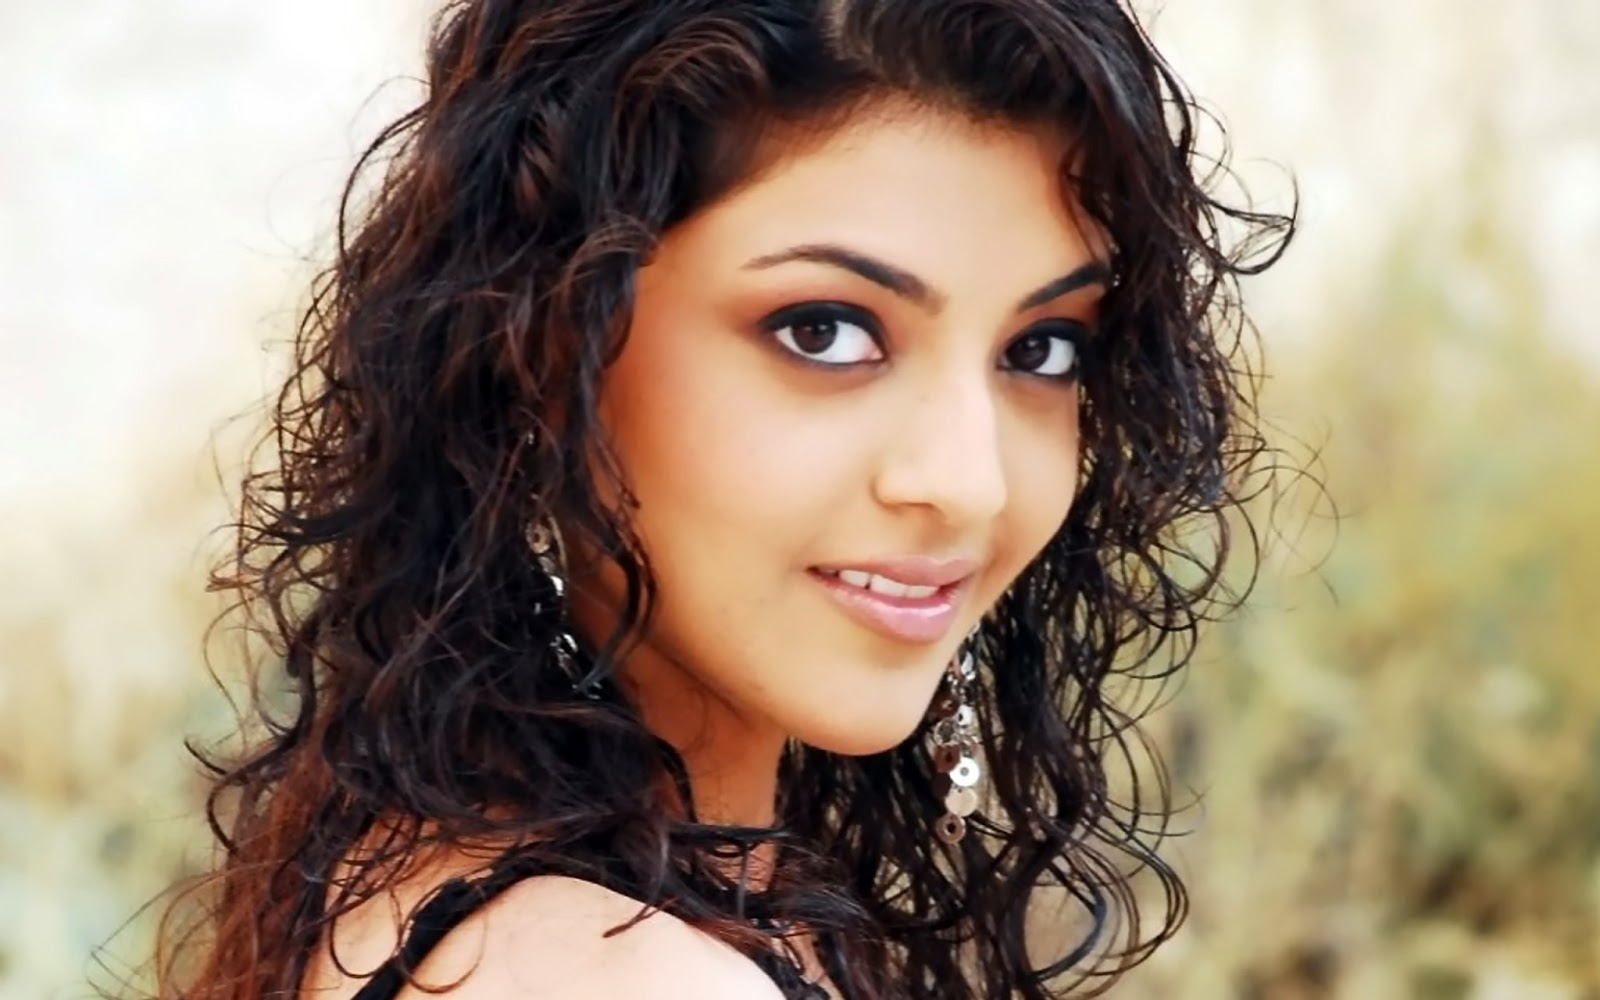 Kajal Agarwal Hd Wallpapers: The Title Of Your Home Page